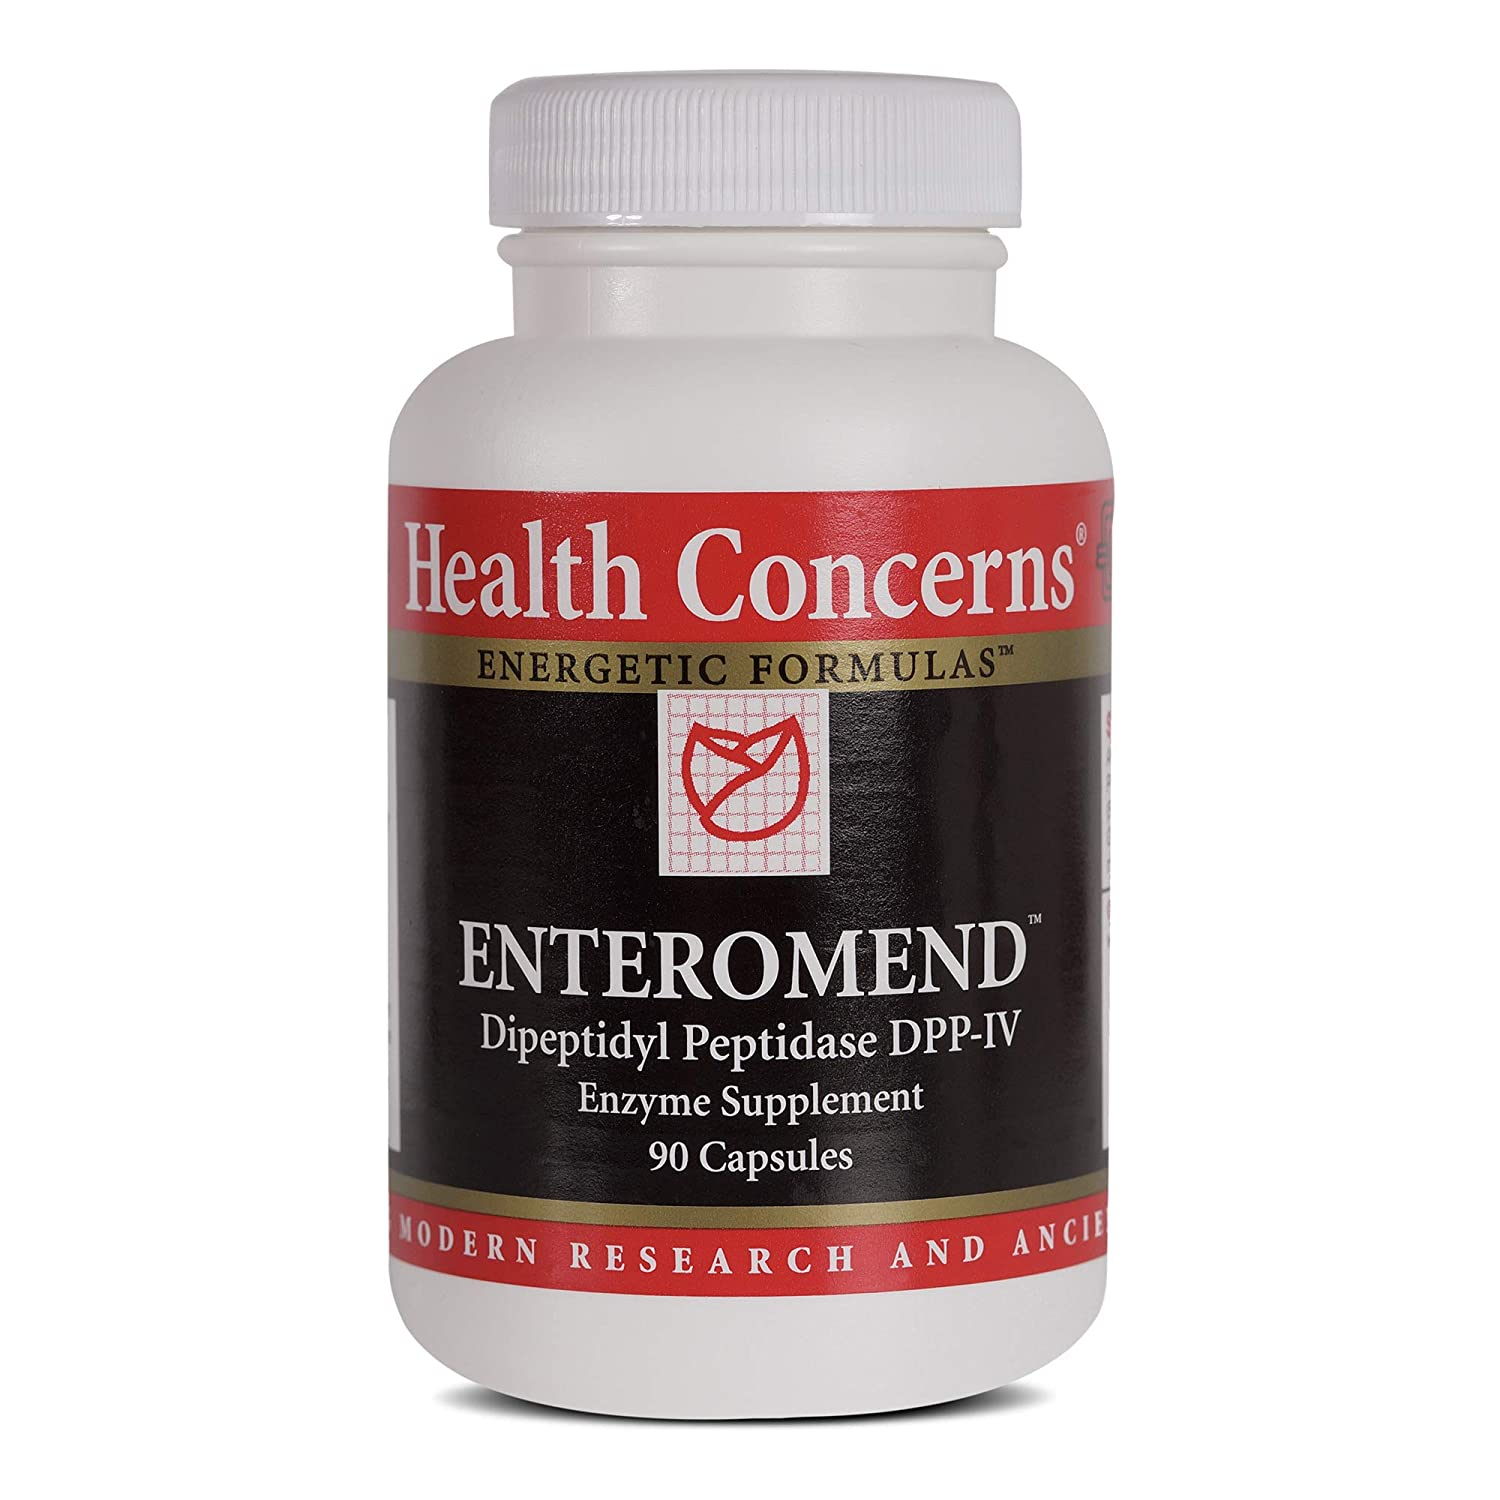 Health Concerns - Enteromend - DPP-IV Chinese Enzyme Formula and Supplement - Treats...